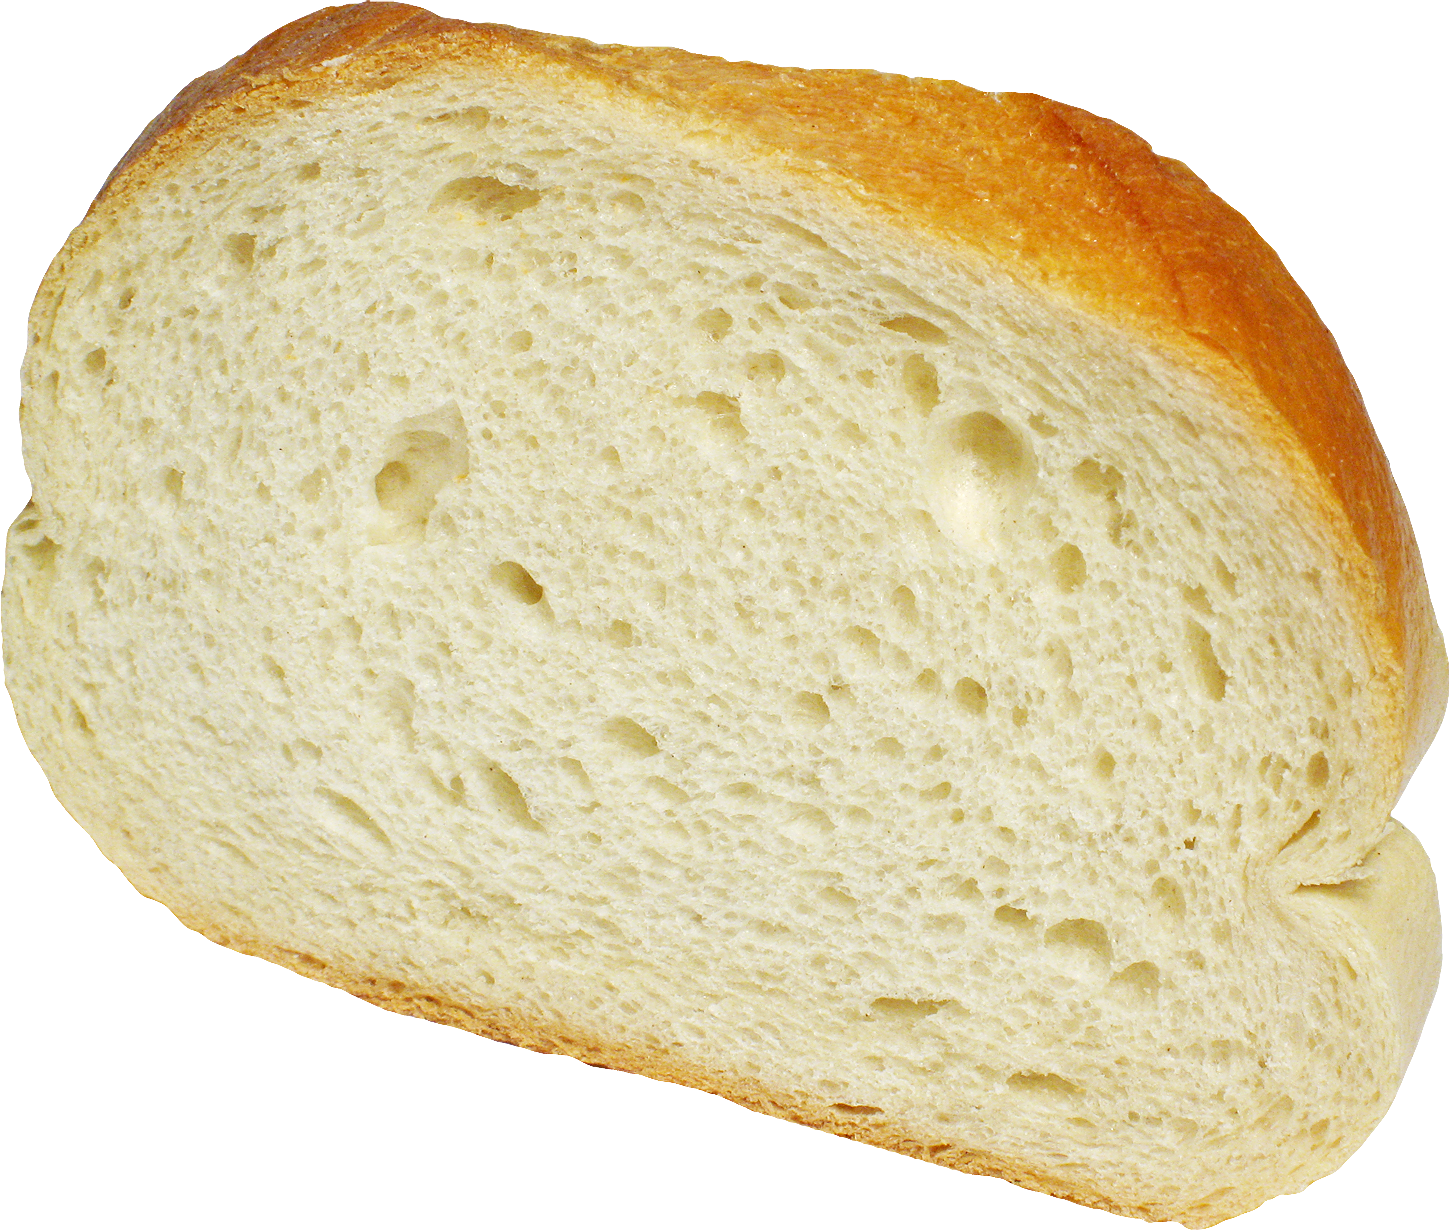 Now you can download Bread PNG Image Without Background